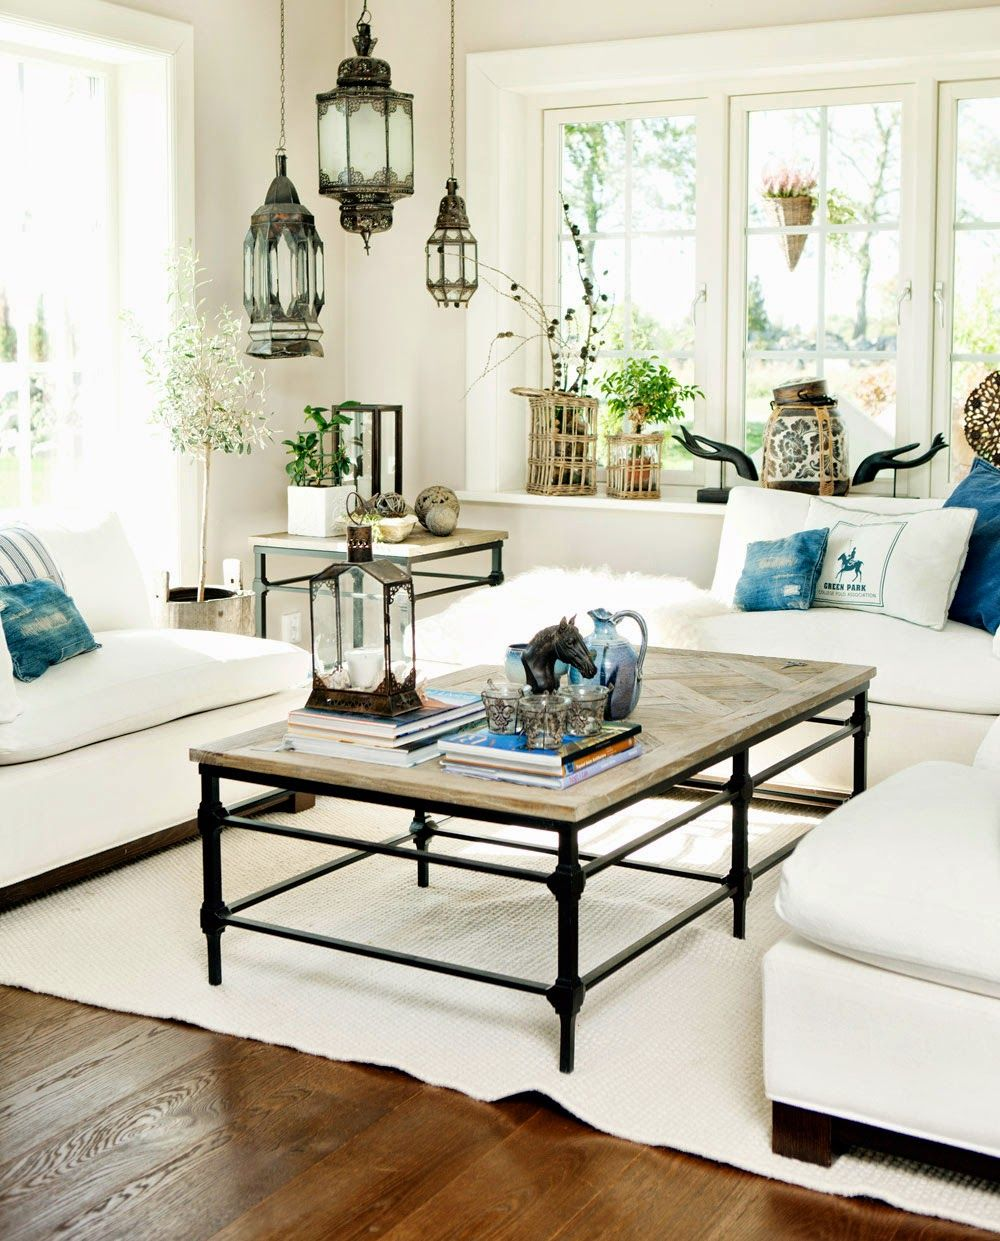 Beautiful New England Home Decorating Ideas Part - 4: The Hanging Lanterns Add An Exotic Touch To This Almost All White Living  Room. Home Decor Inspiration :: Elements Of A New England Home